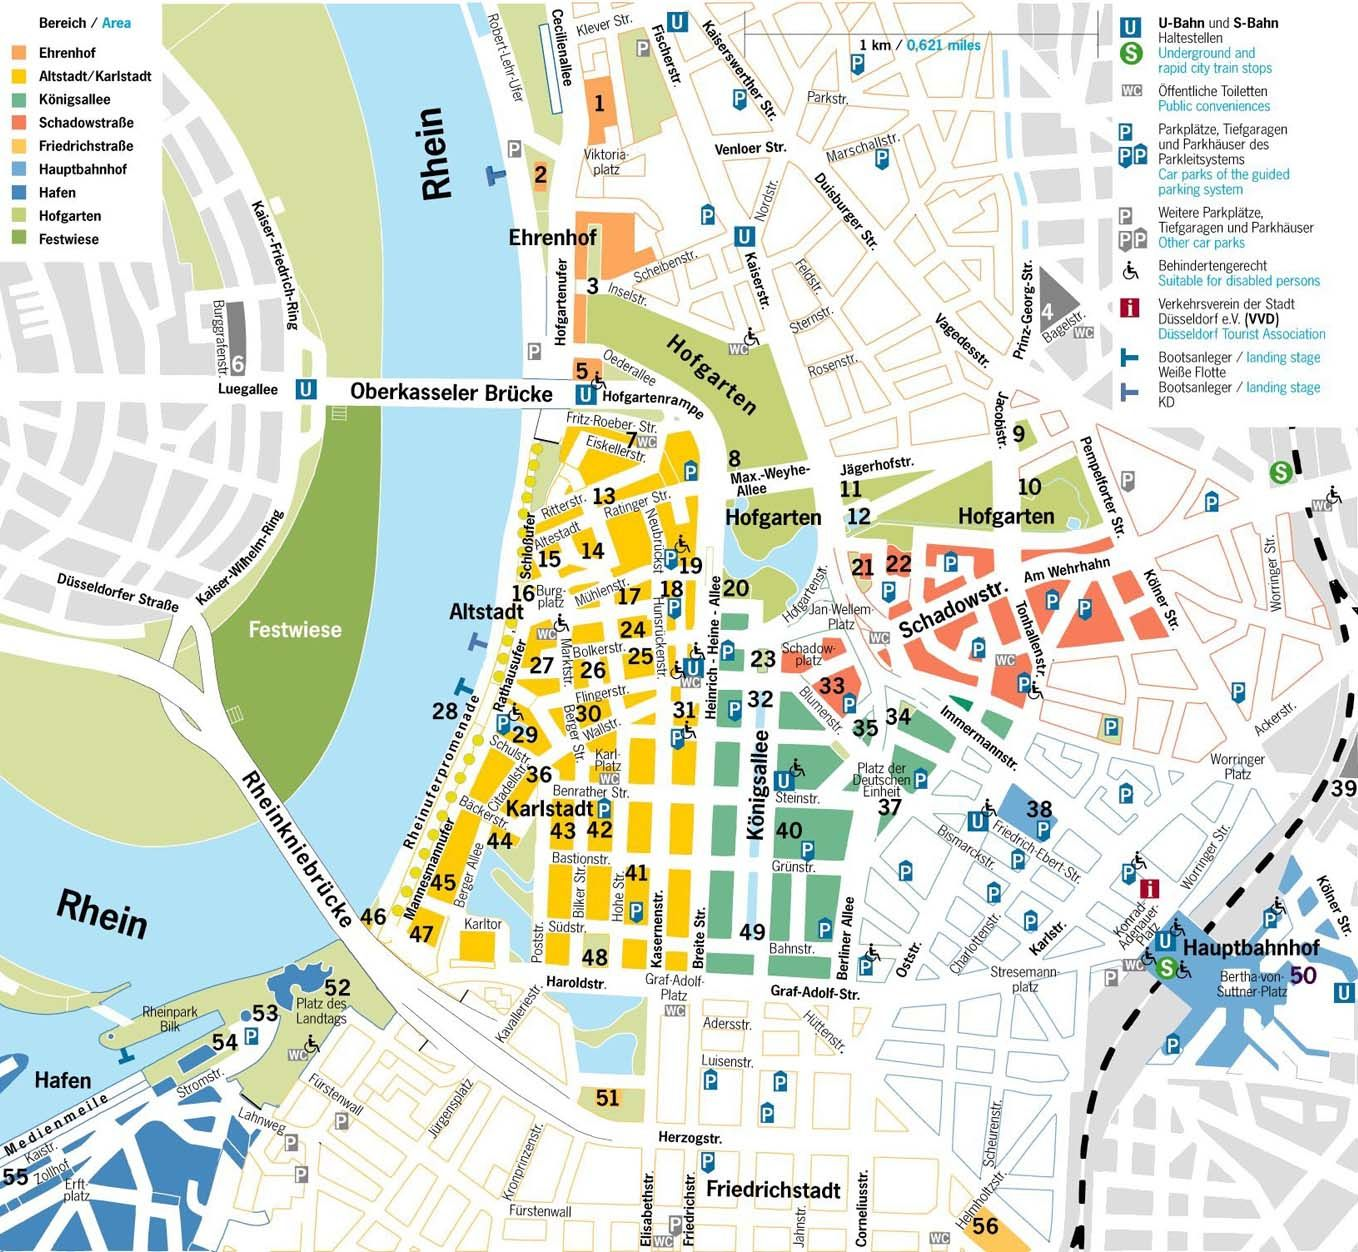 dusseldorf tourist map  tourist maps  pinterest  tourist map - dusseldorf tourist map